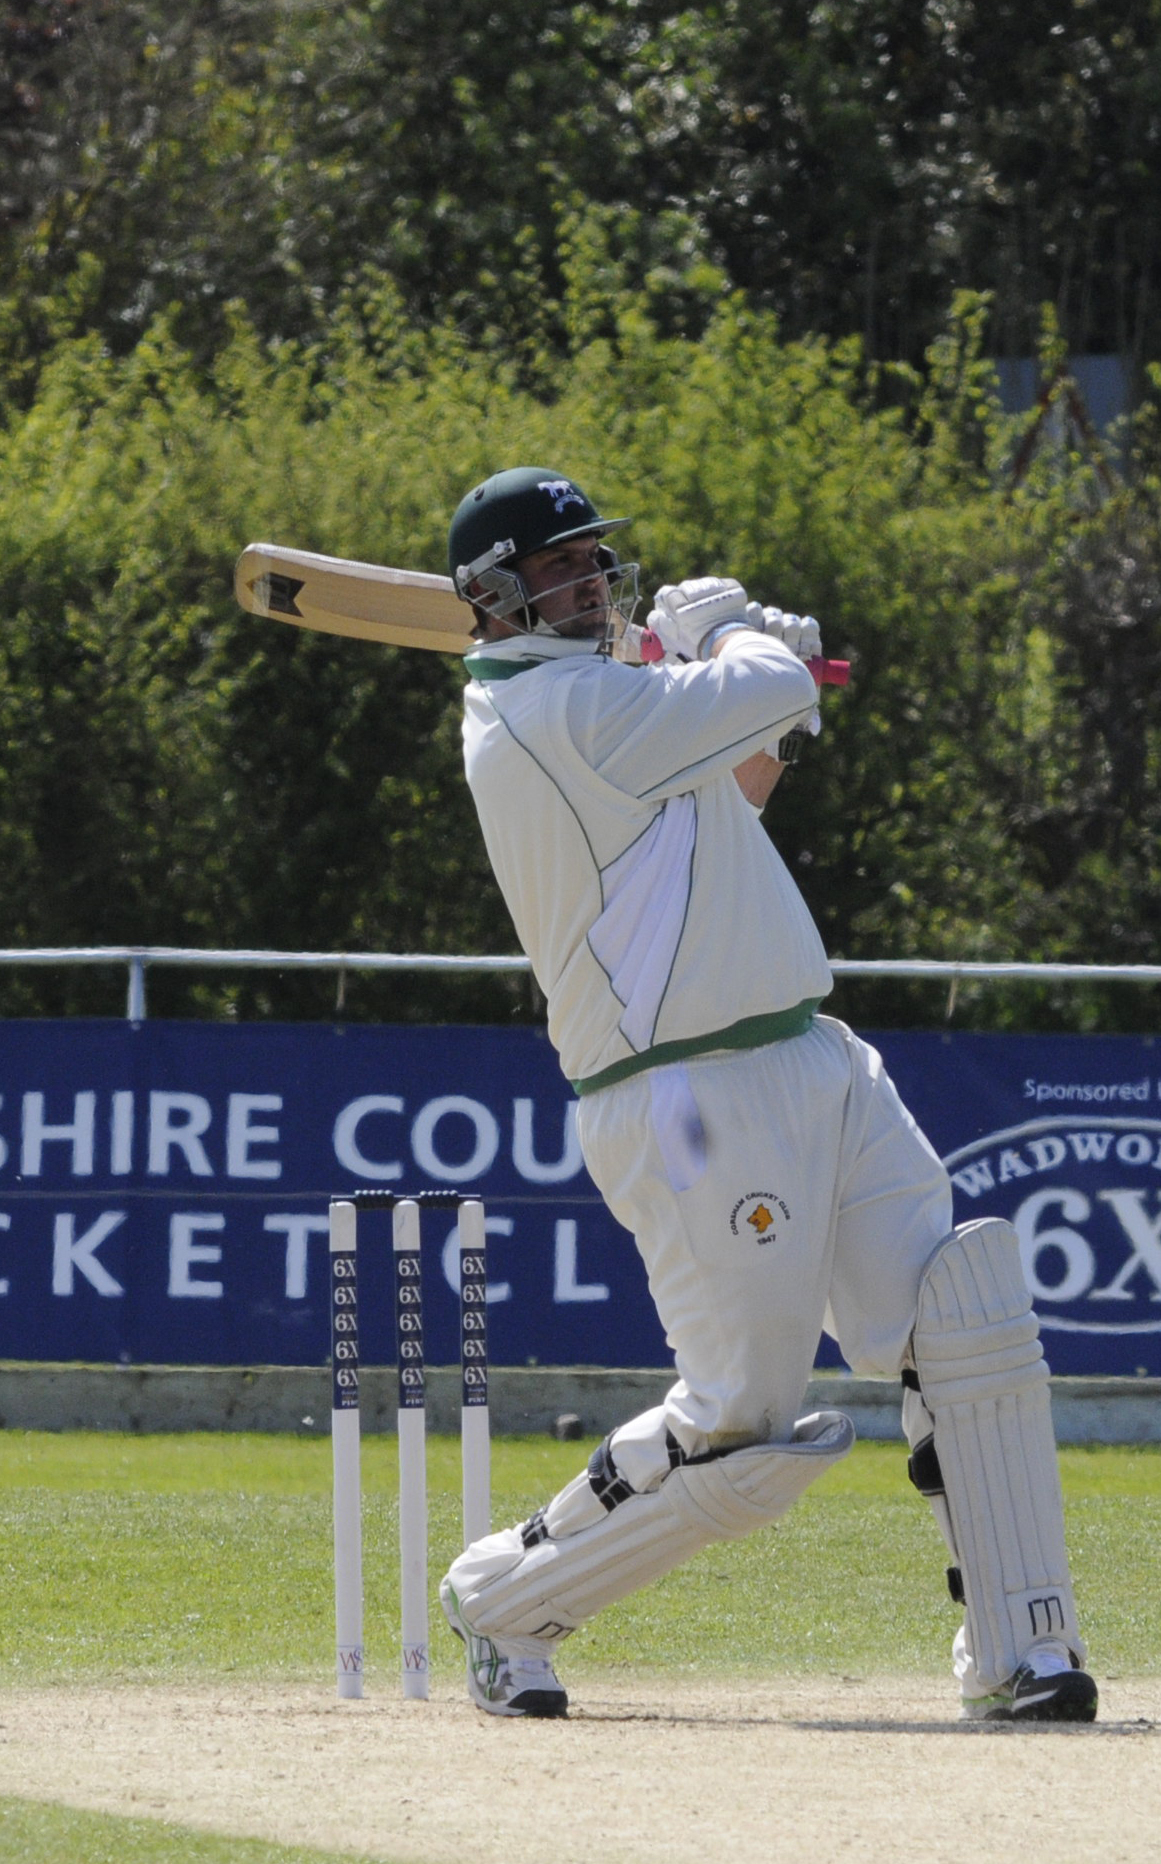 Mike Coles scored 67 in Corsham's win over Frocester